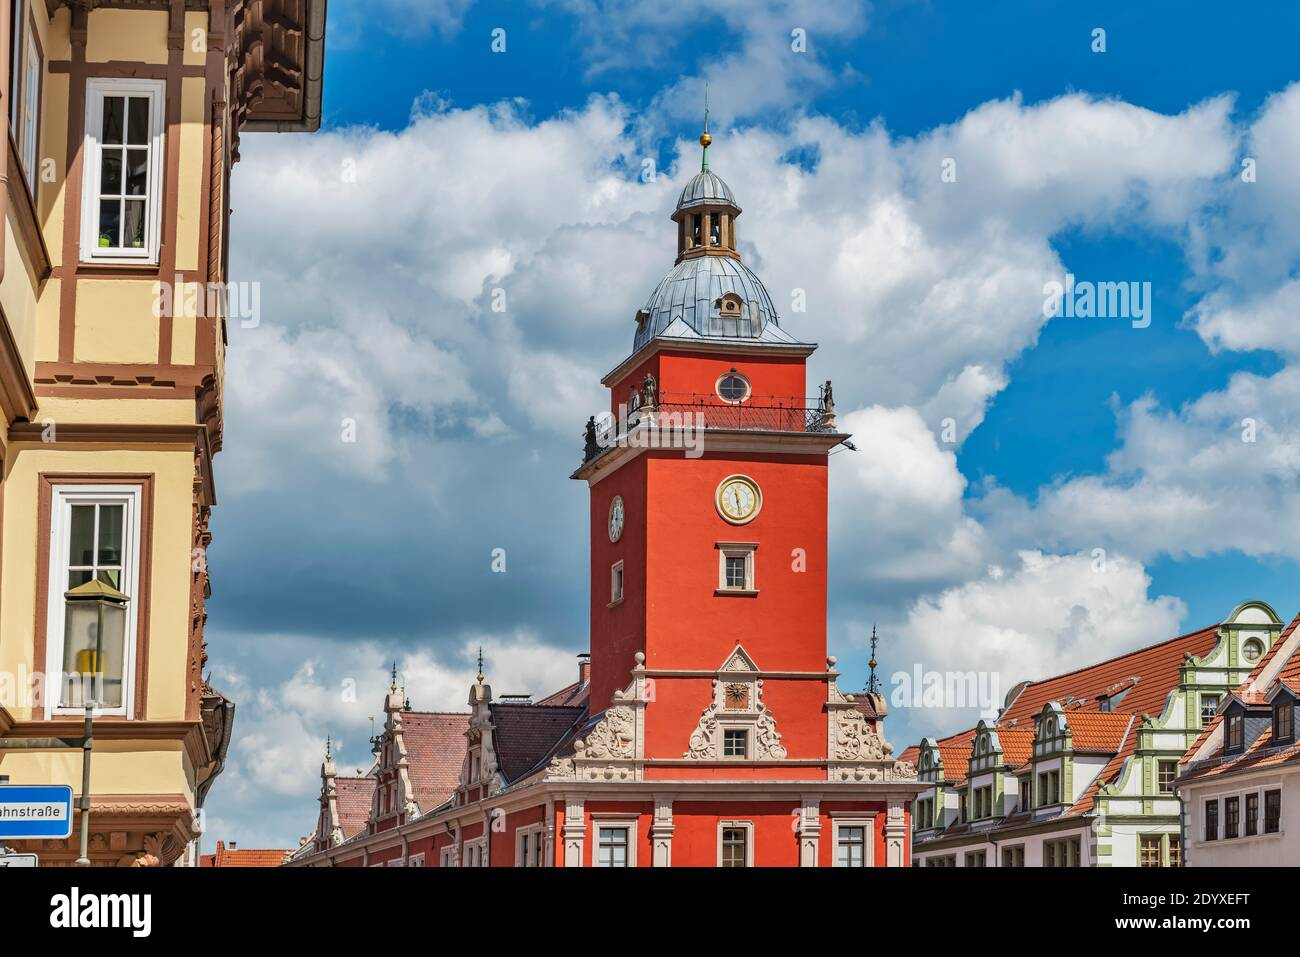 The Old Town Hall is located on the main market square in Gotha, Thuringia, Germany, Europe Stock Photo